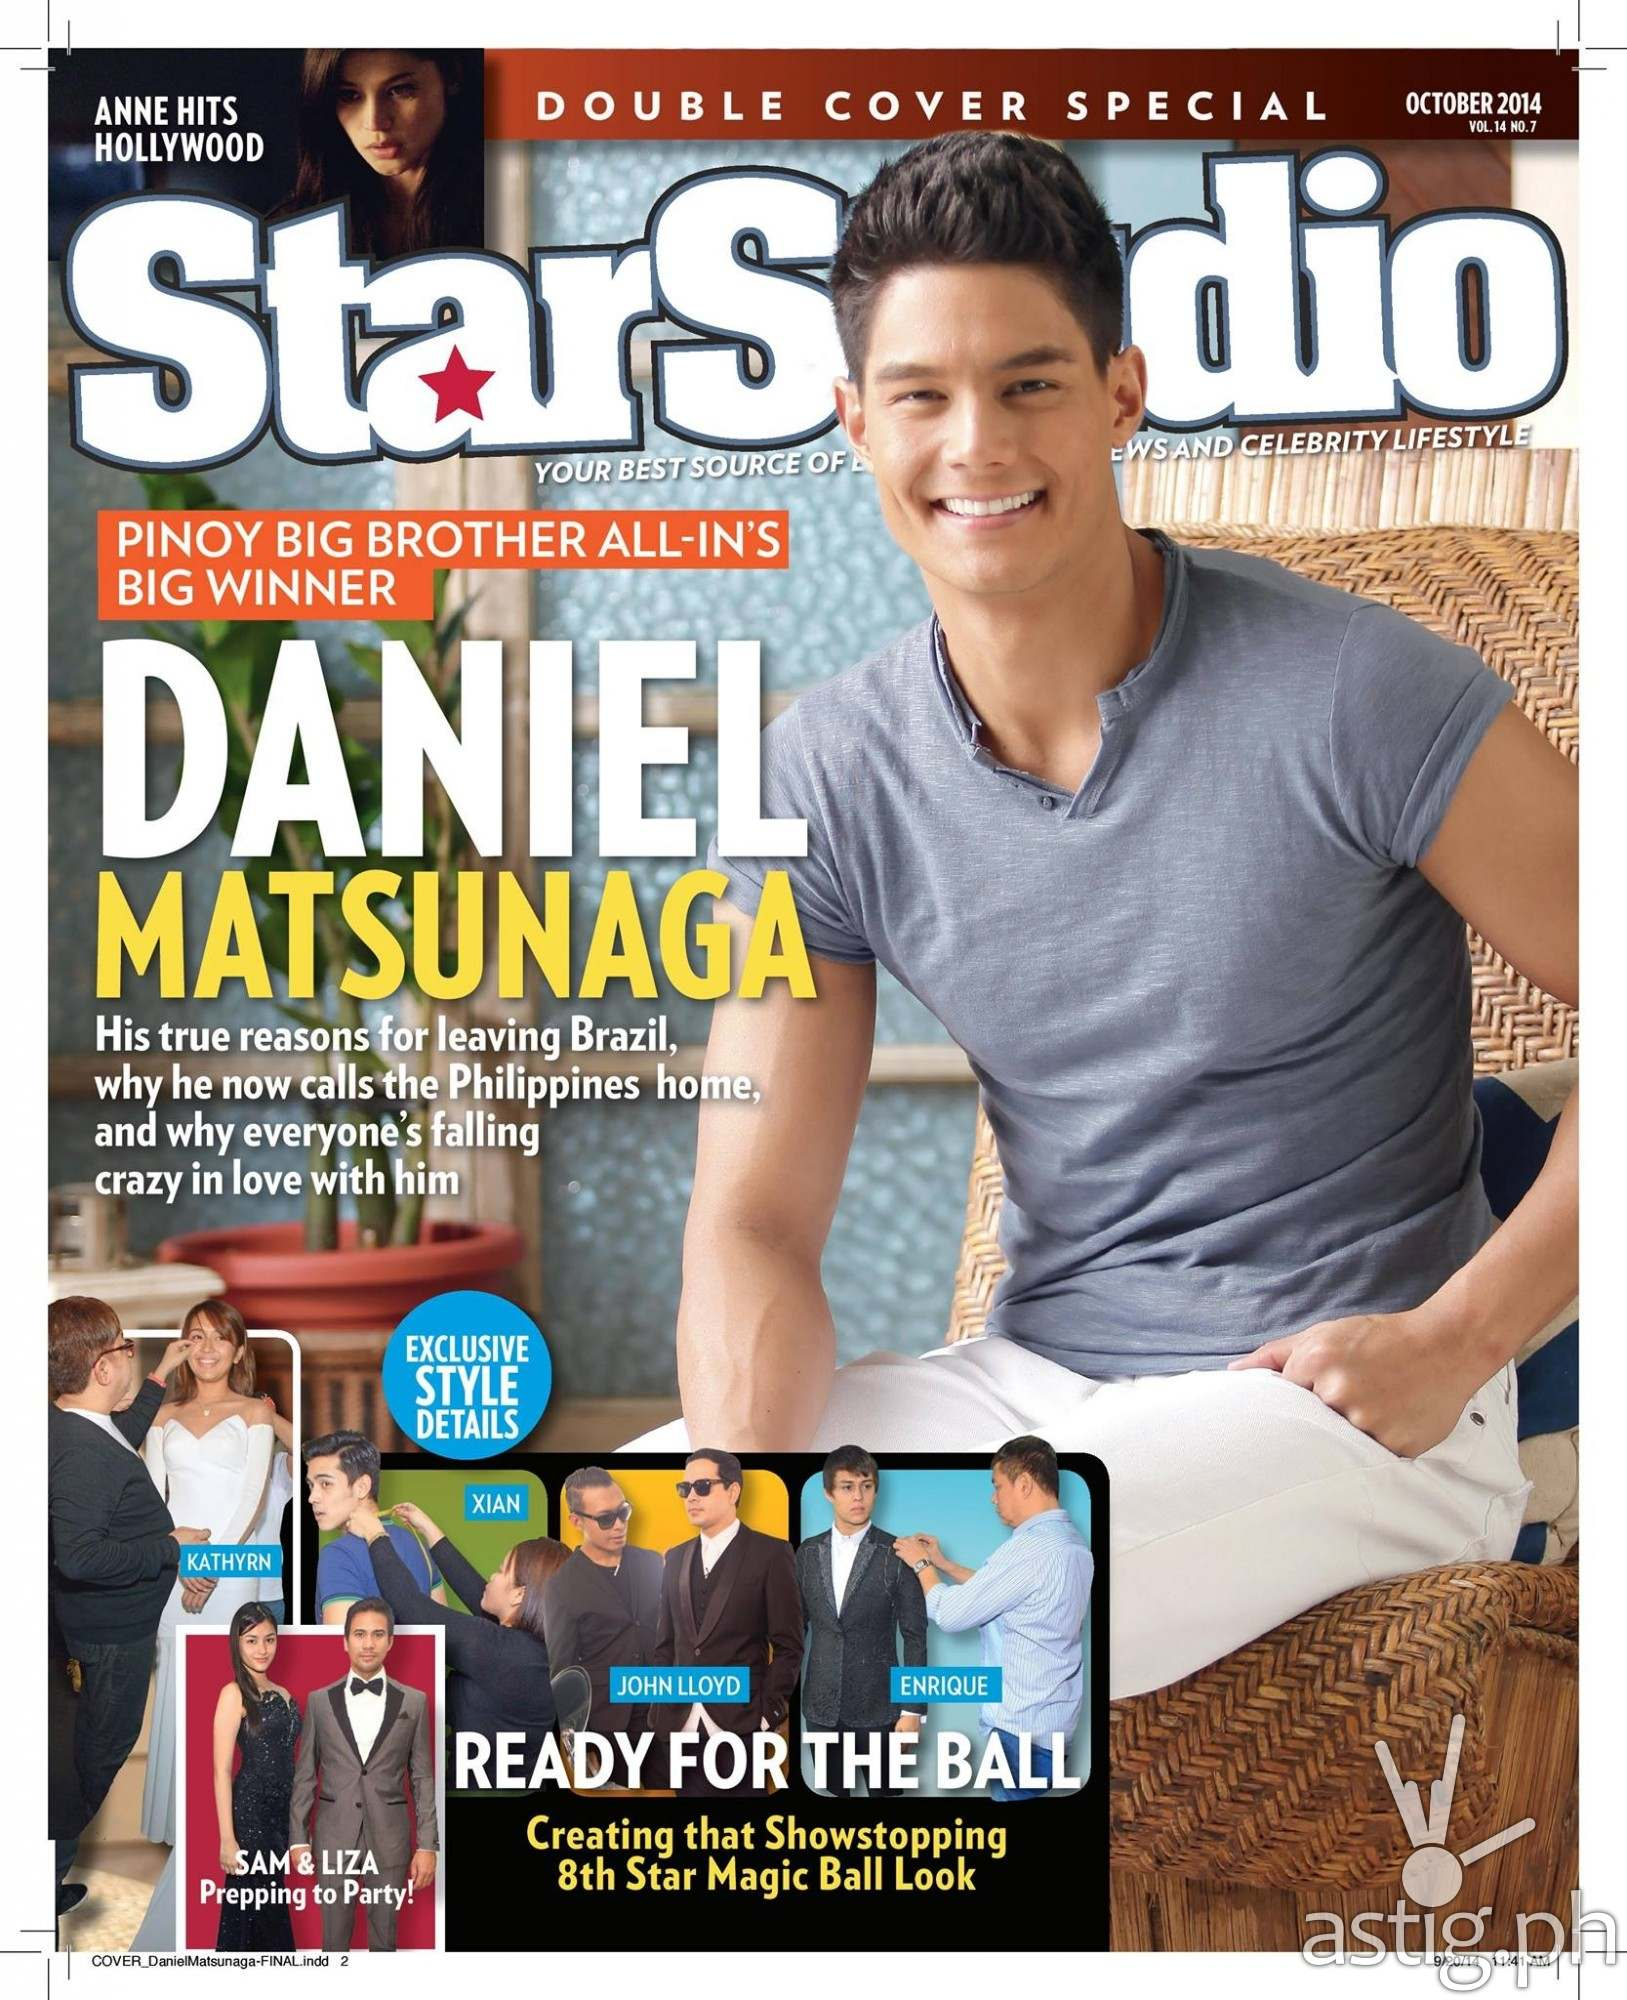 Daniel Matsunaga on StarStudio Magazine October 2014